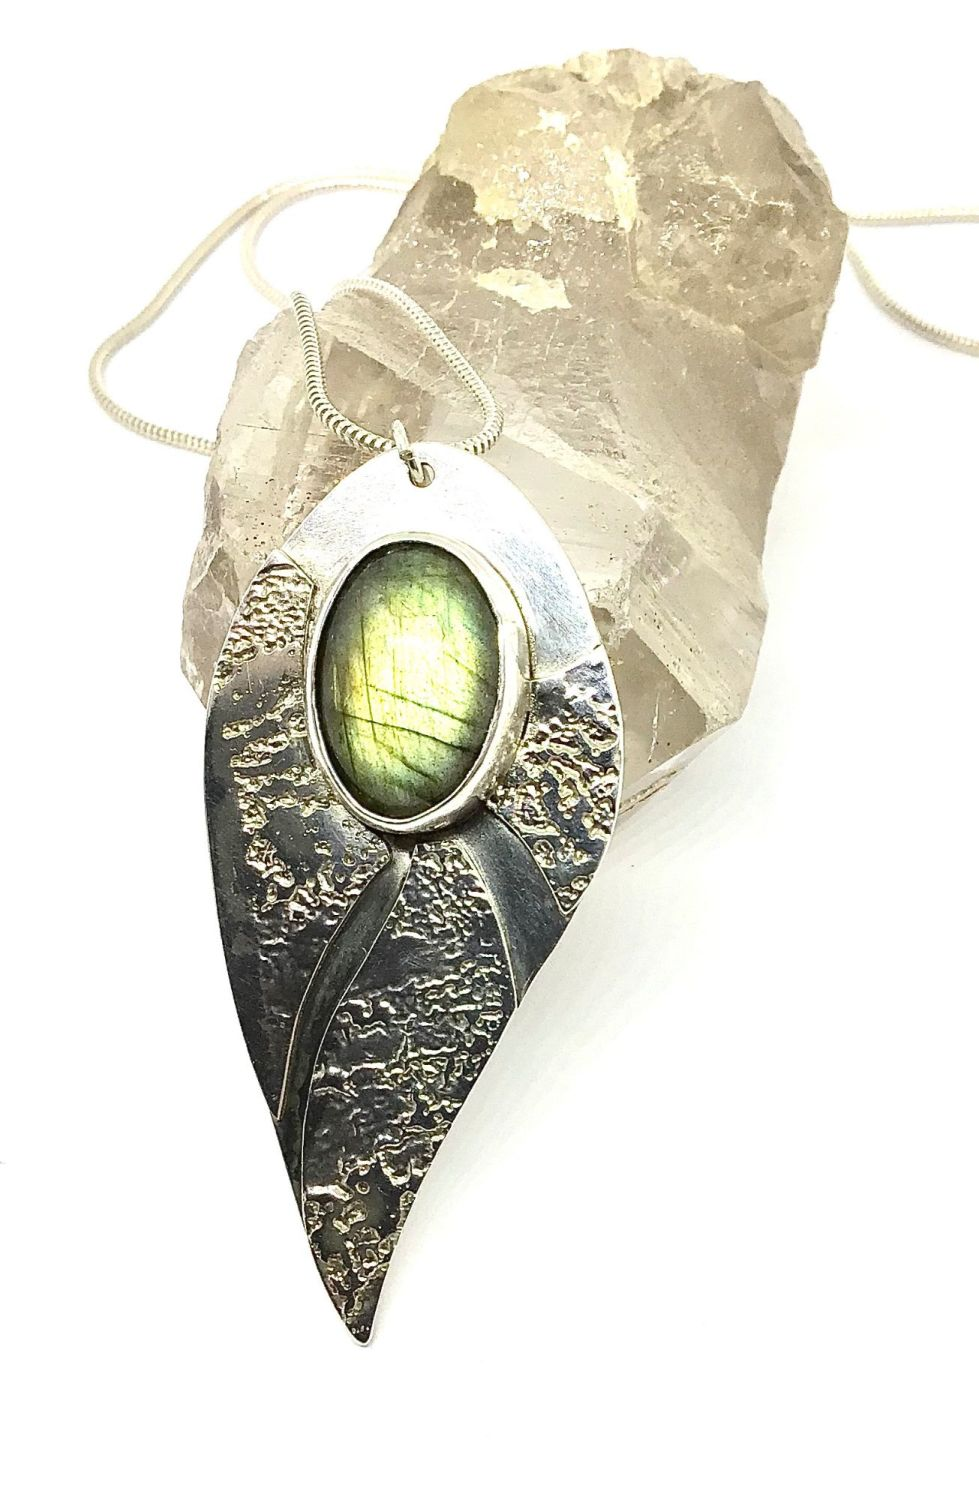 Etched Silver Pendant With Labradorite Stone.  Item ECT008